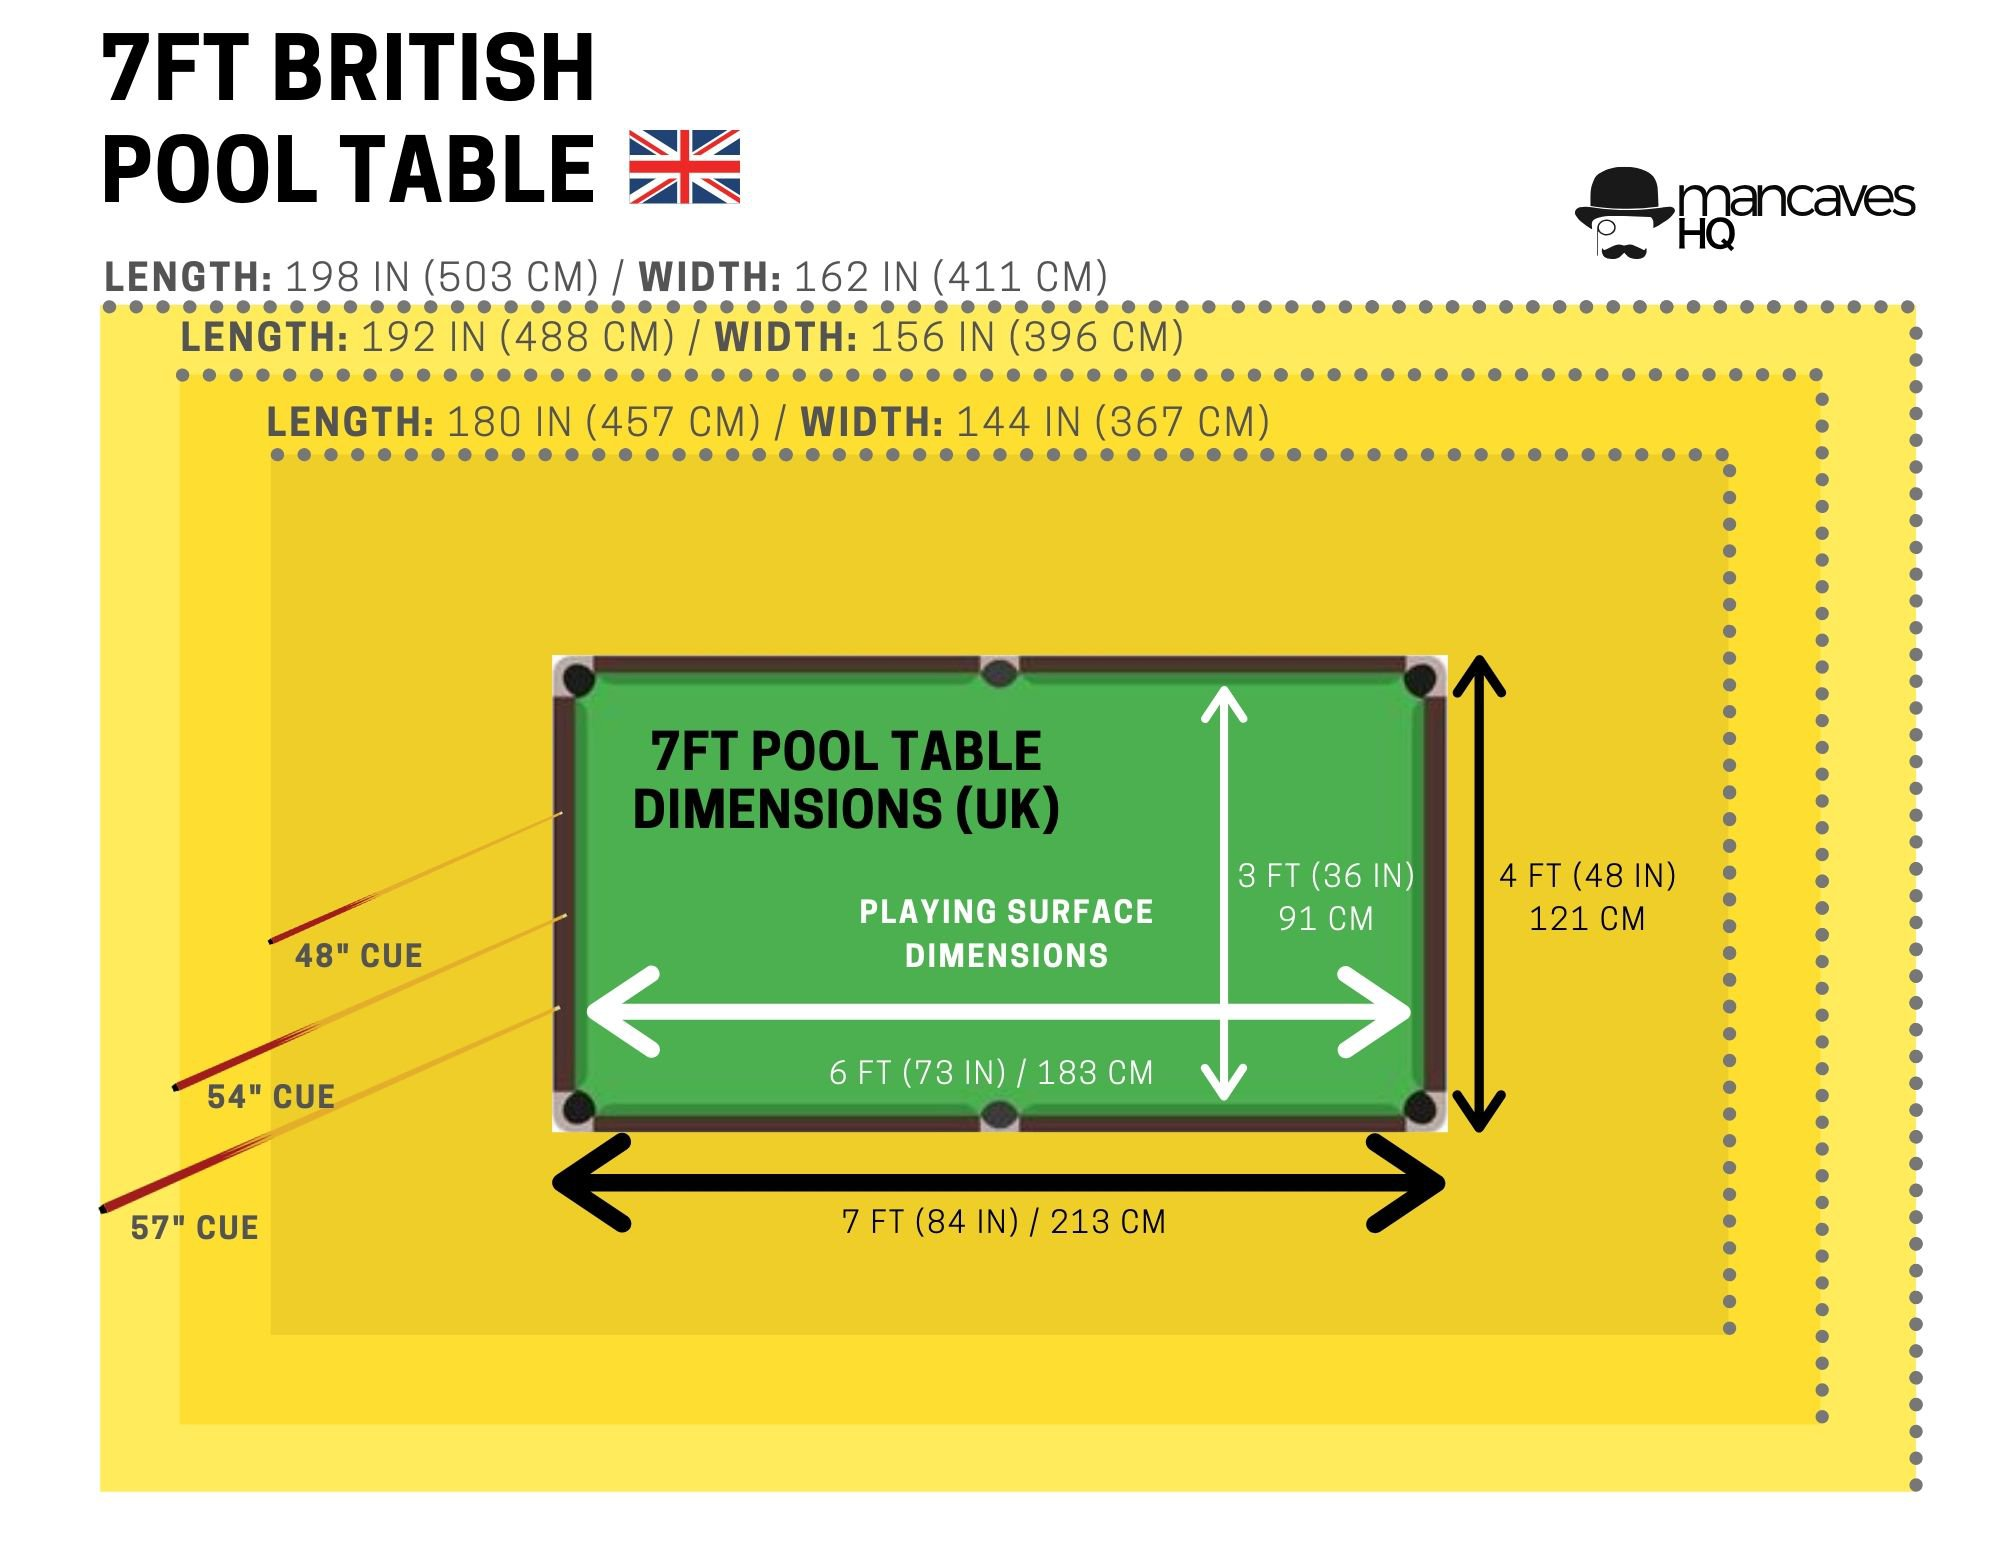 Pool Table Size Chart for 7ft British Pool Tables